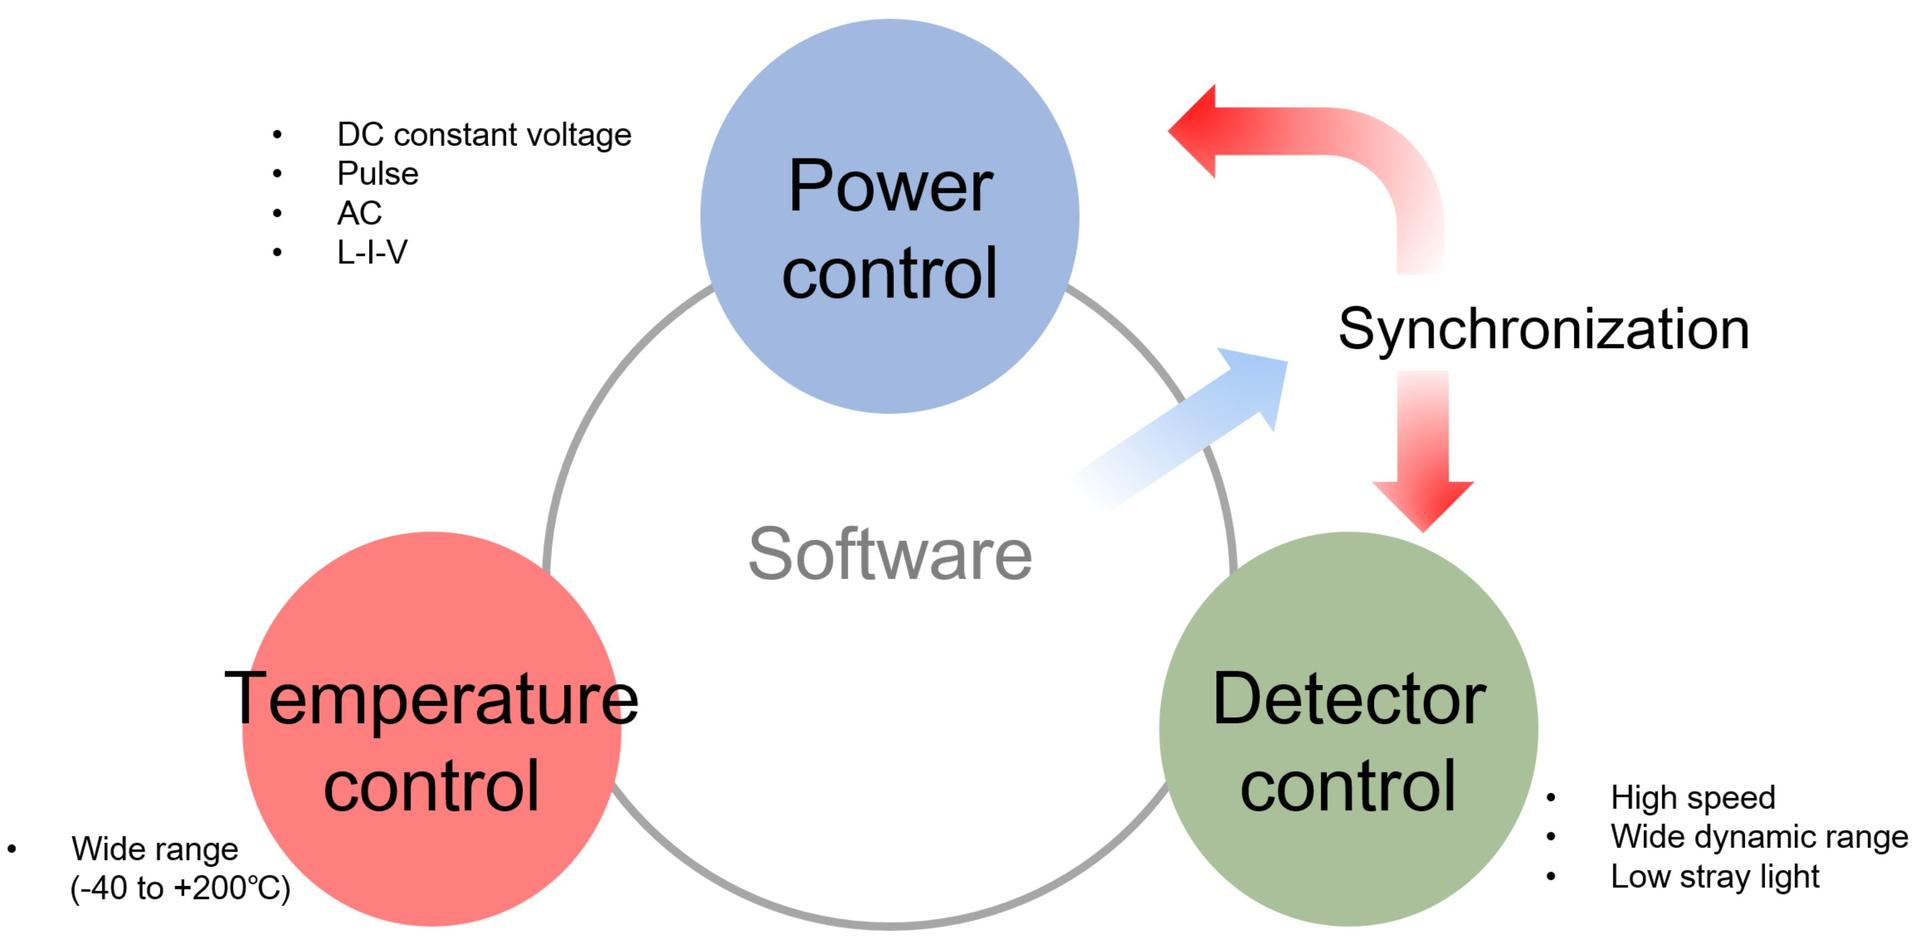 Temperature control-power control-detector control through software synchronization